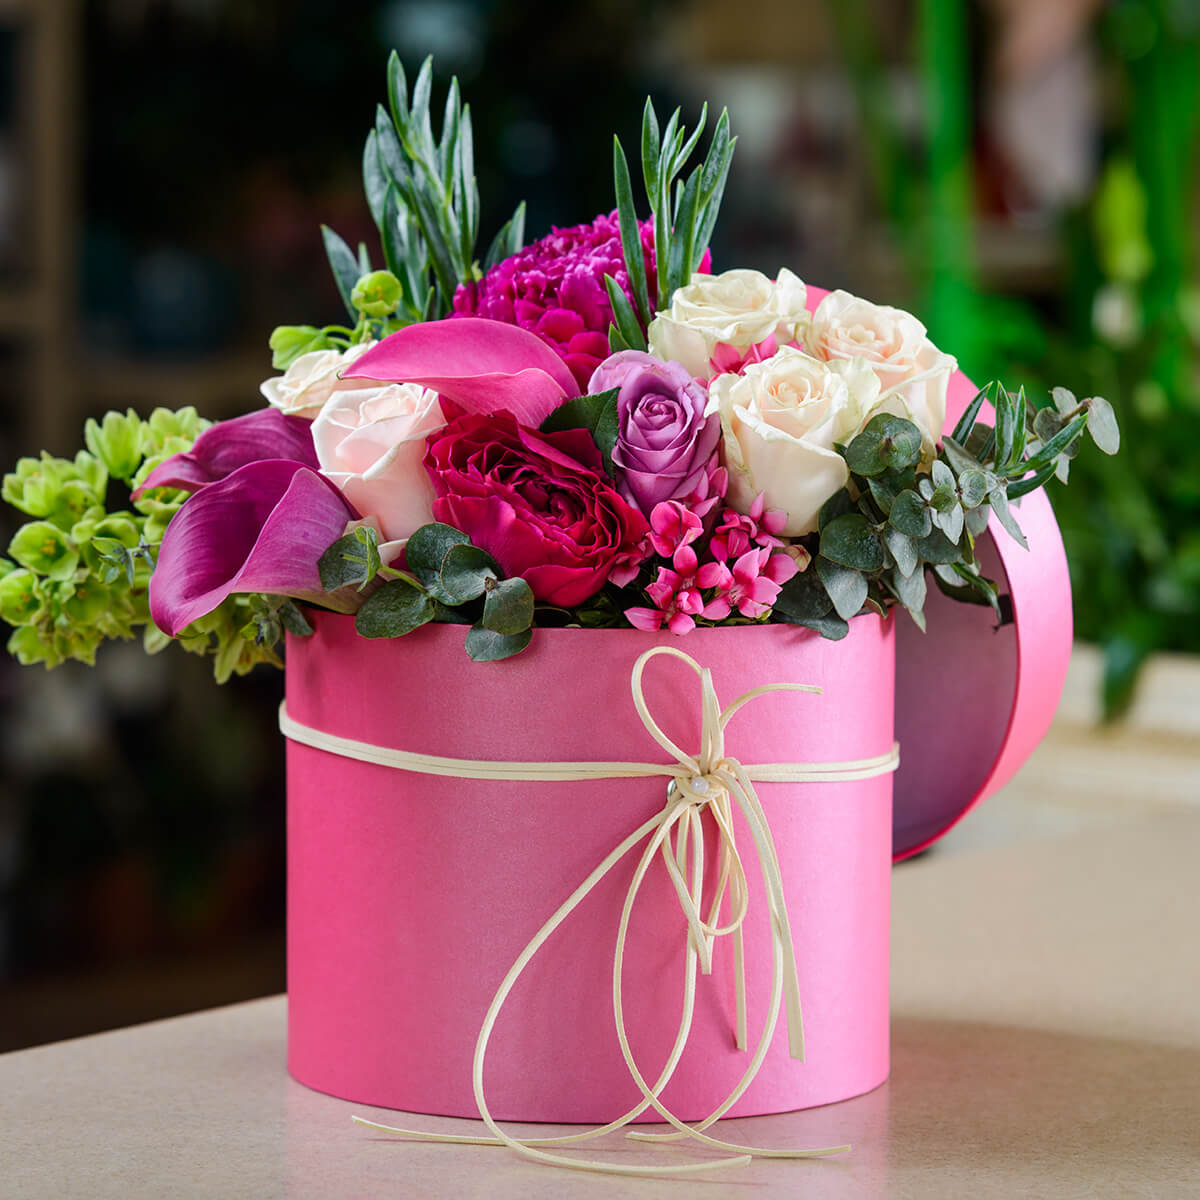 Toronto S Most Exquisite Flowers Gift Baskets Free Same Day Delivery